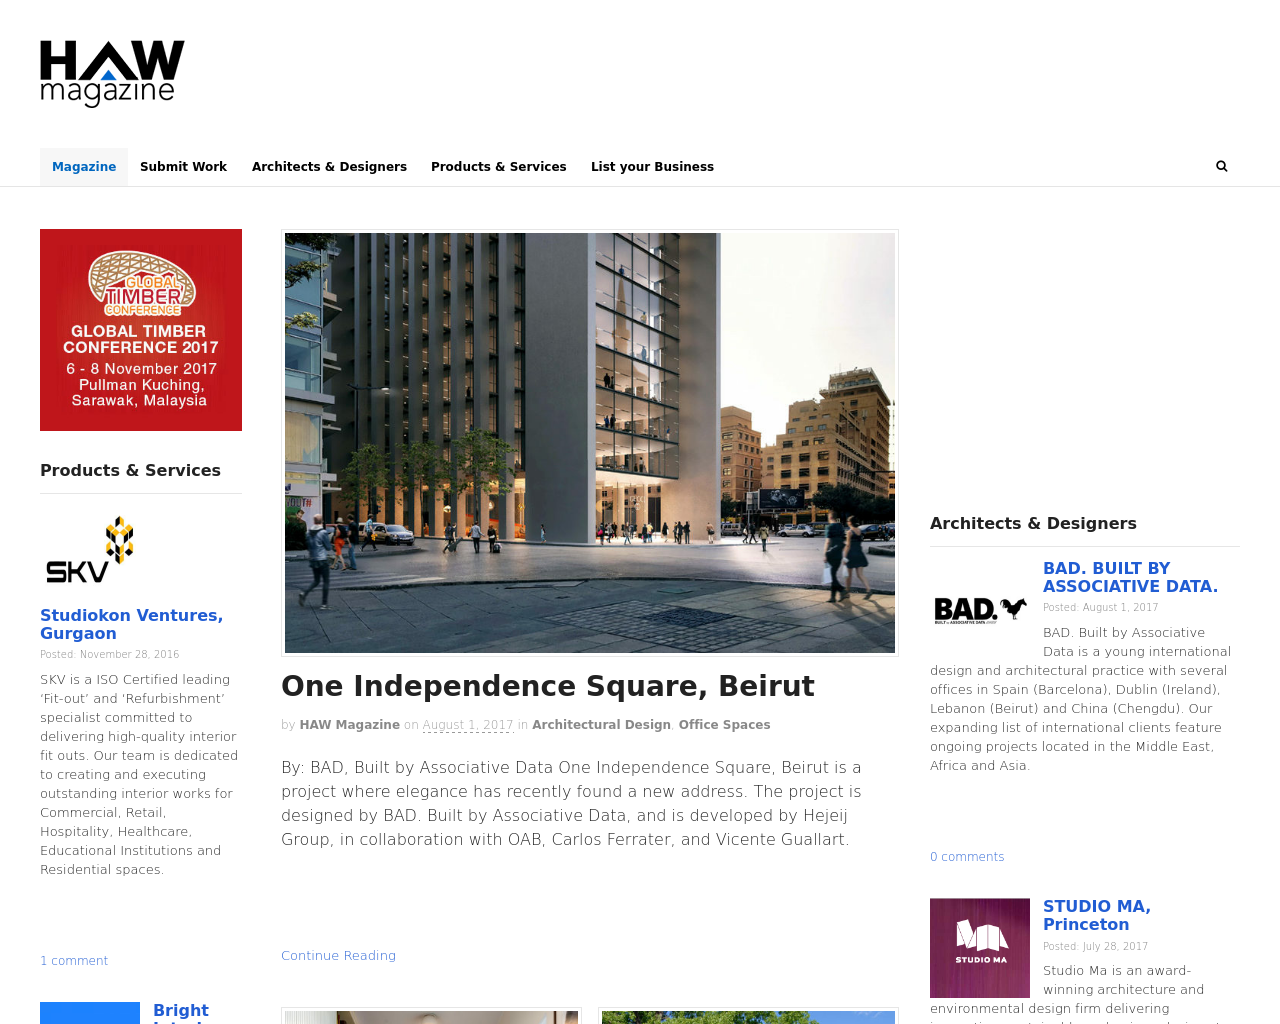 HAW-Magazine-Advertising-Reviews-Pricing